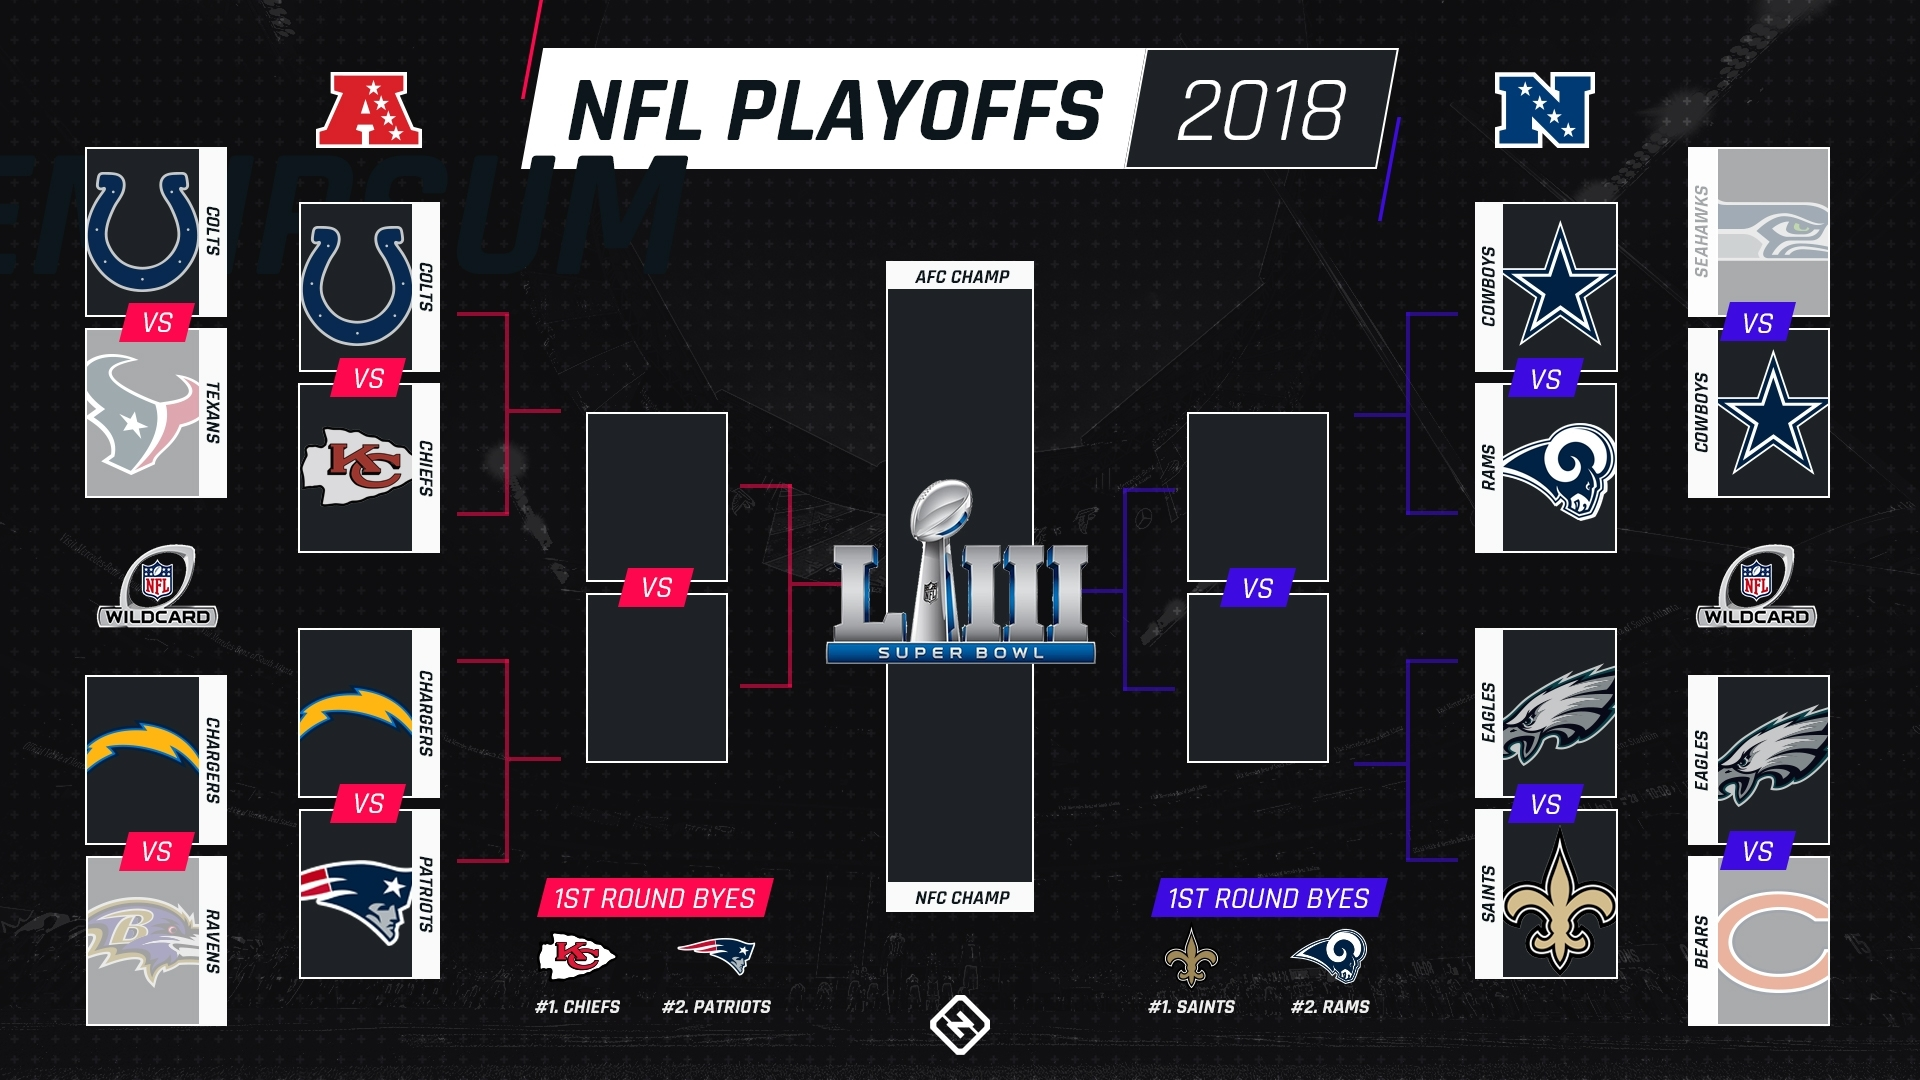 Nfl Playoff Schedule: Kickoff Times, Tv Channels For